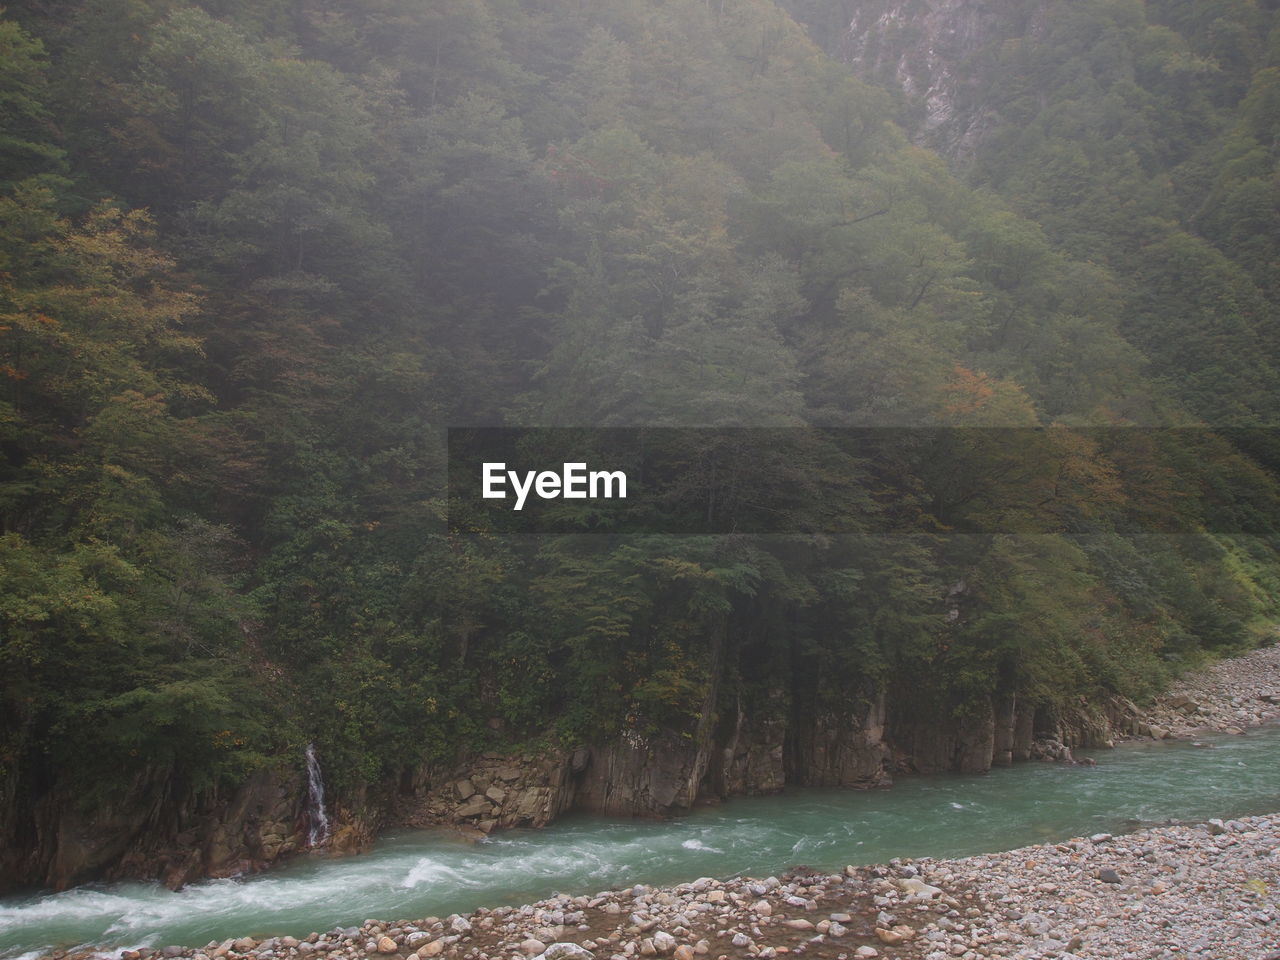 tree, plant, forest, land, scenics - nature, beauty in nature, water, nature, mountain, environment, tranquility, day, fog, tranquil scene, non-urban scene, growth, no people, outdoors, rainforest, flowing water